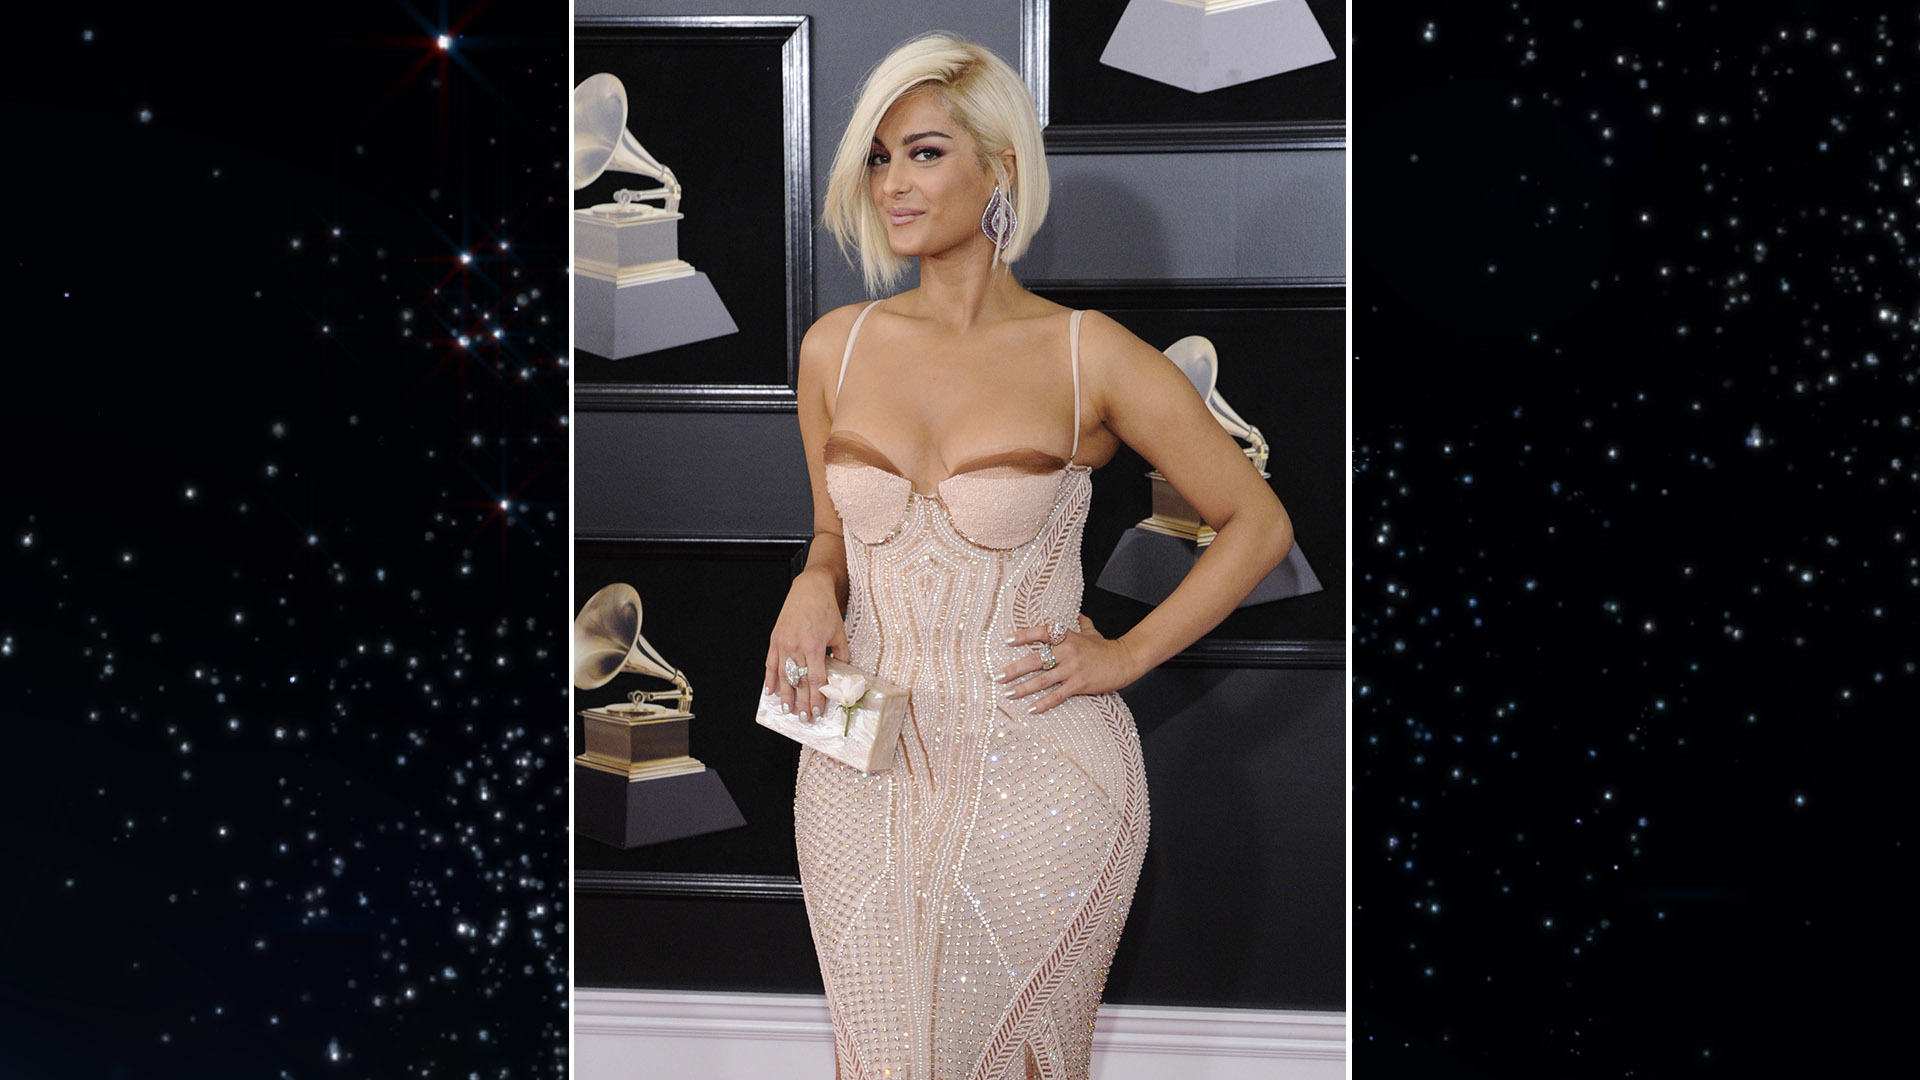 Pop singer Bebe Rexha debuts a short new 'do on the GRAMMY red carpet before joining Kesha for a heartfelt rendition of